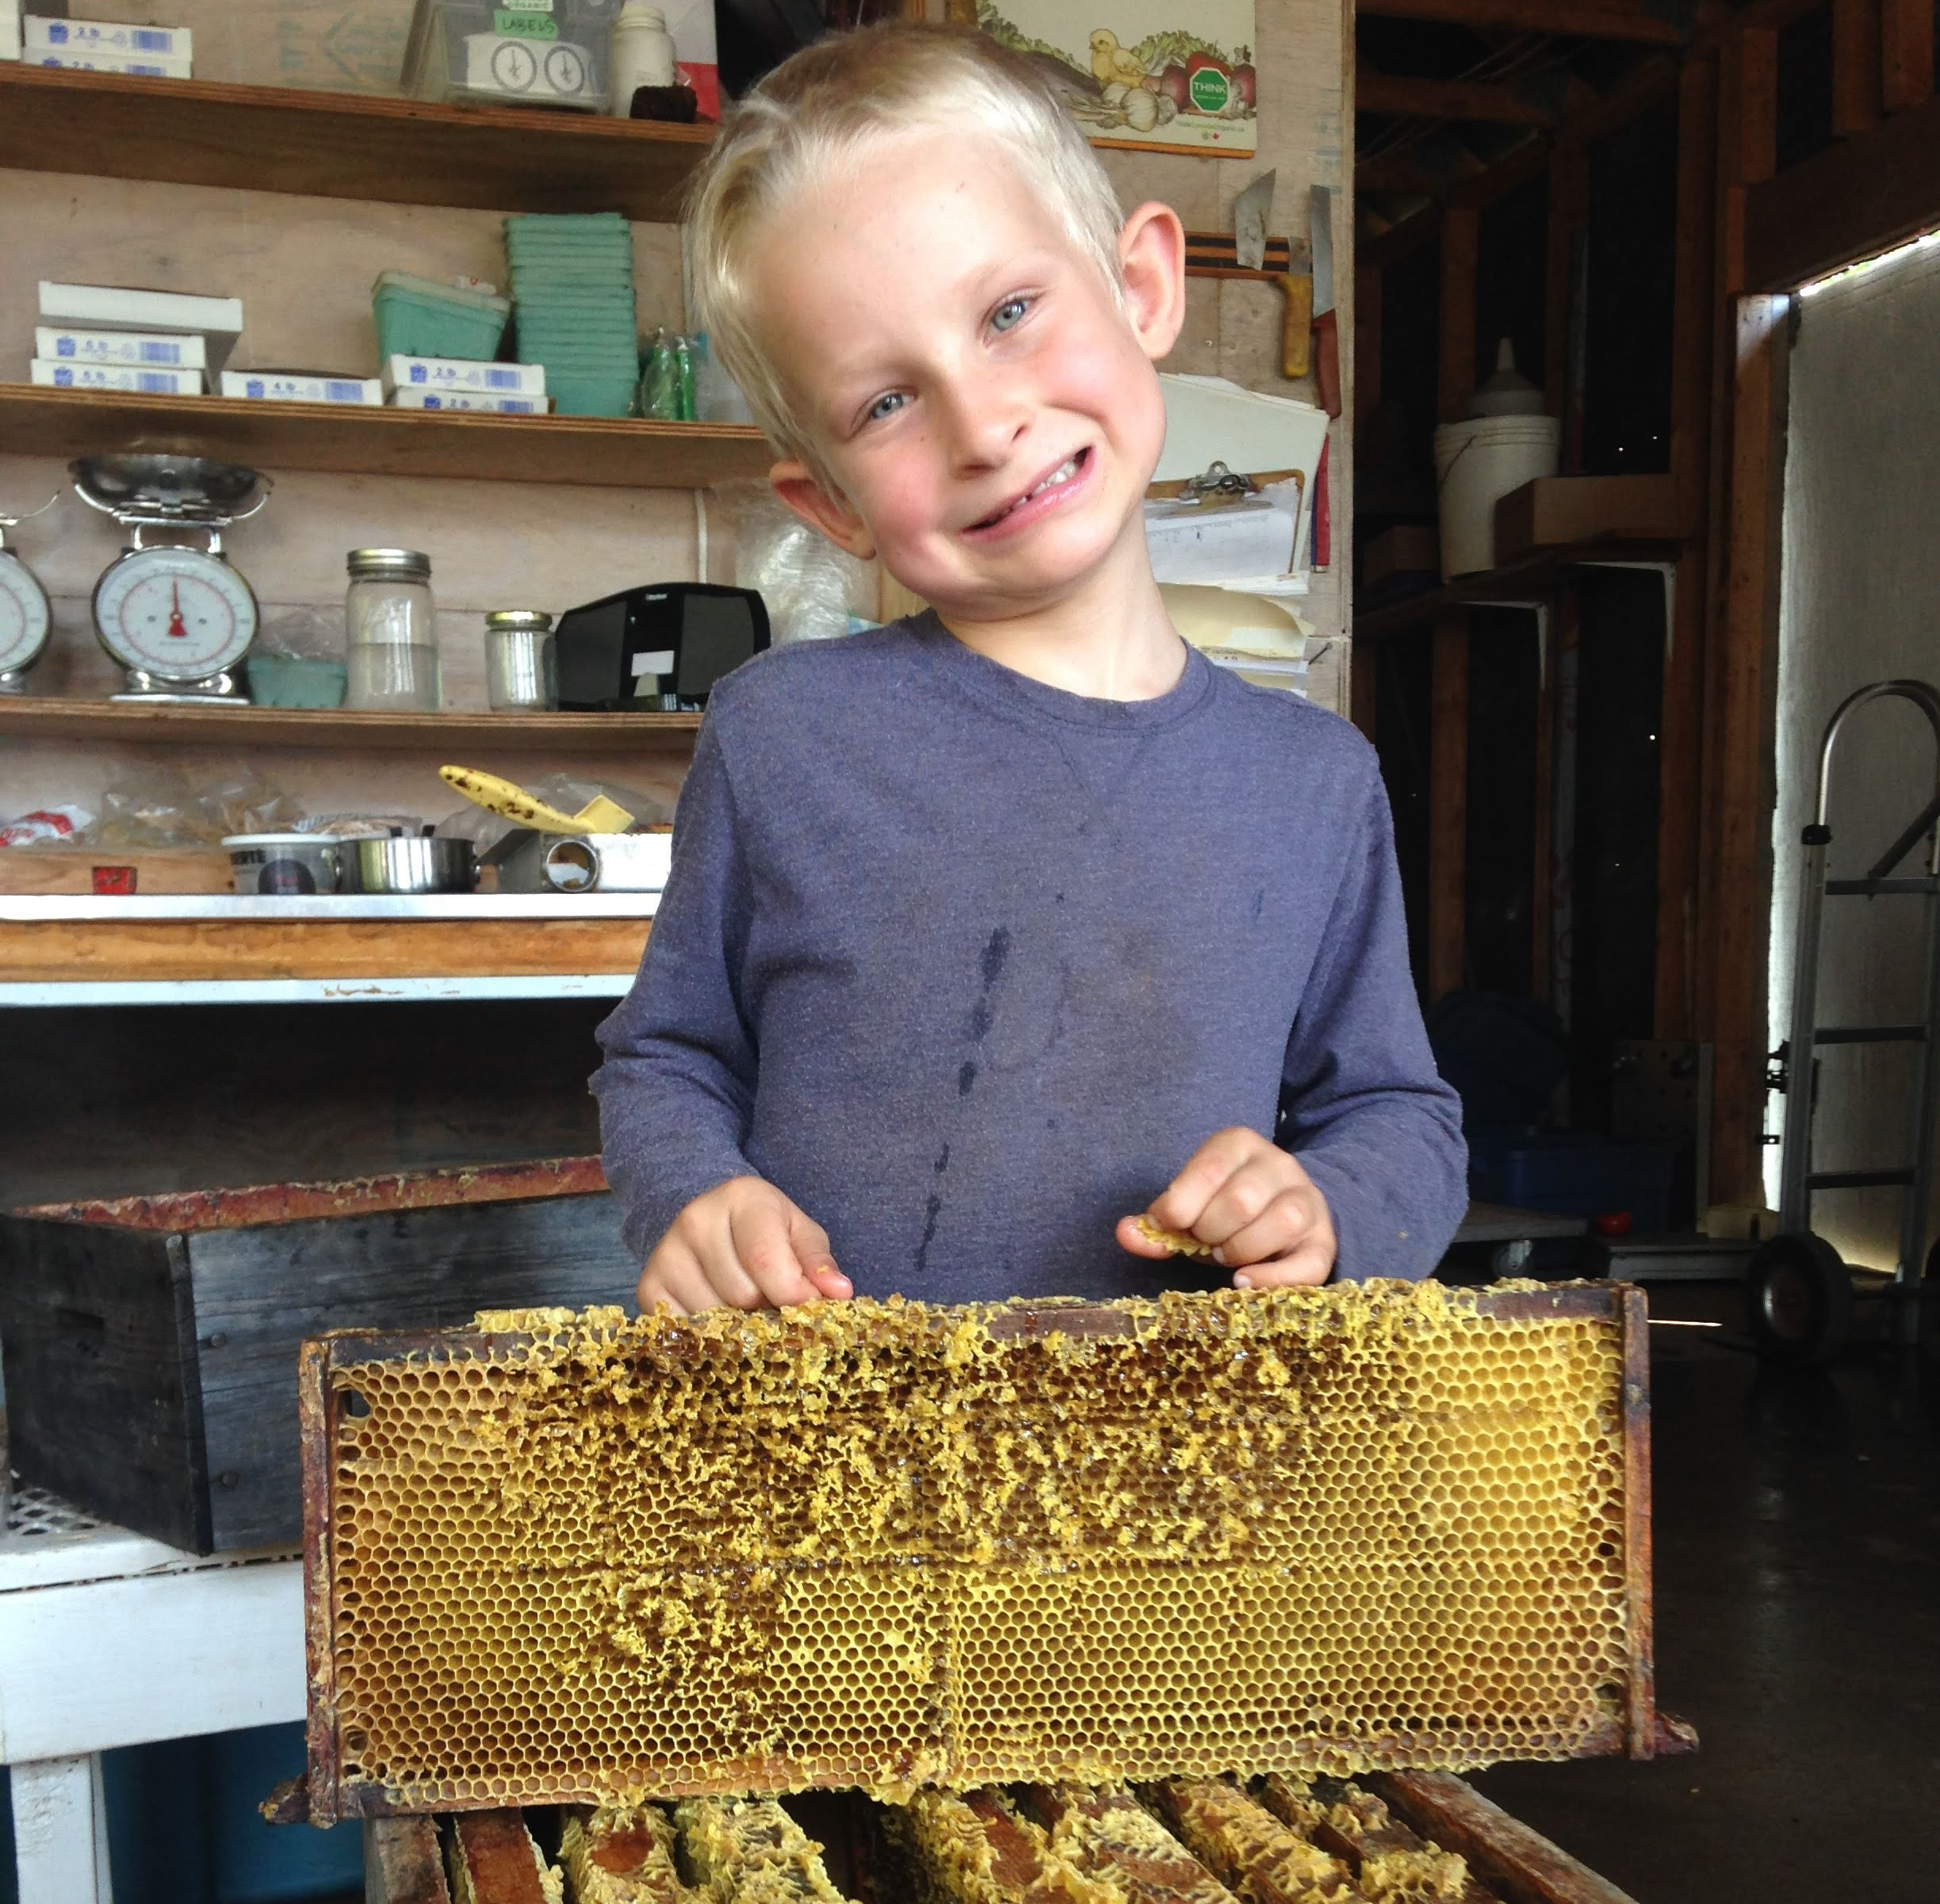 Keir Herbert-Harbottle is an excellent helper on the farm. His main areas of focus are honey production, melon sampling, and harvest supervision.